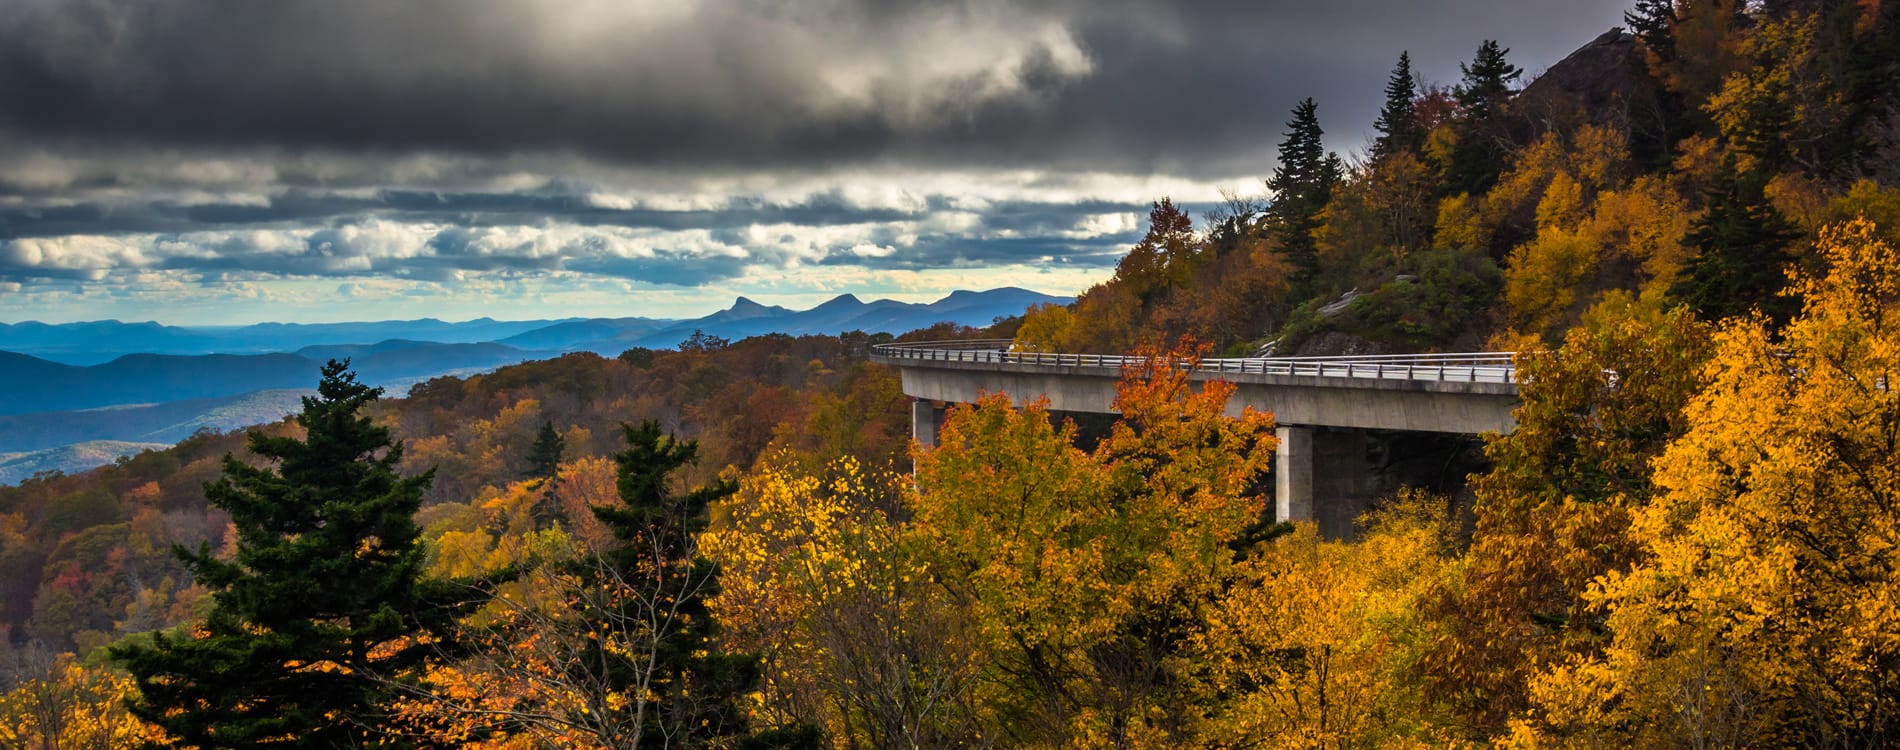 Asheville, NC - Autumn View of Linn Cove Viaduct Along Blue Ridge Parkway